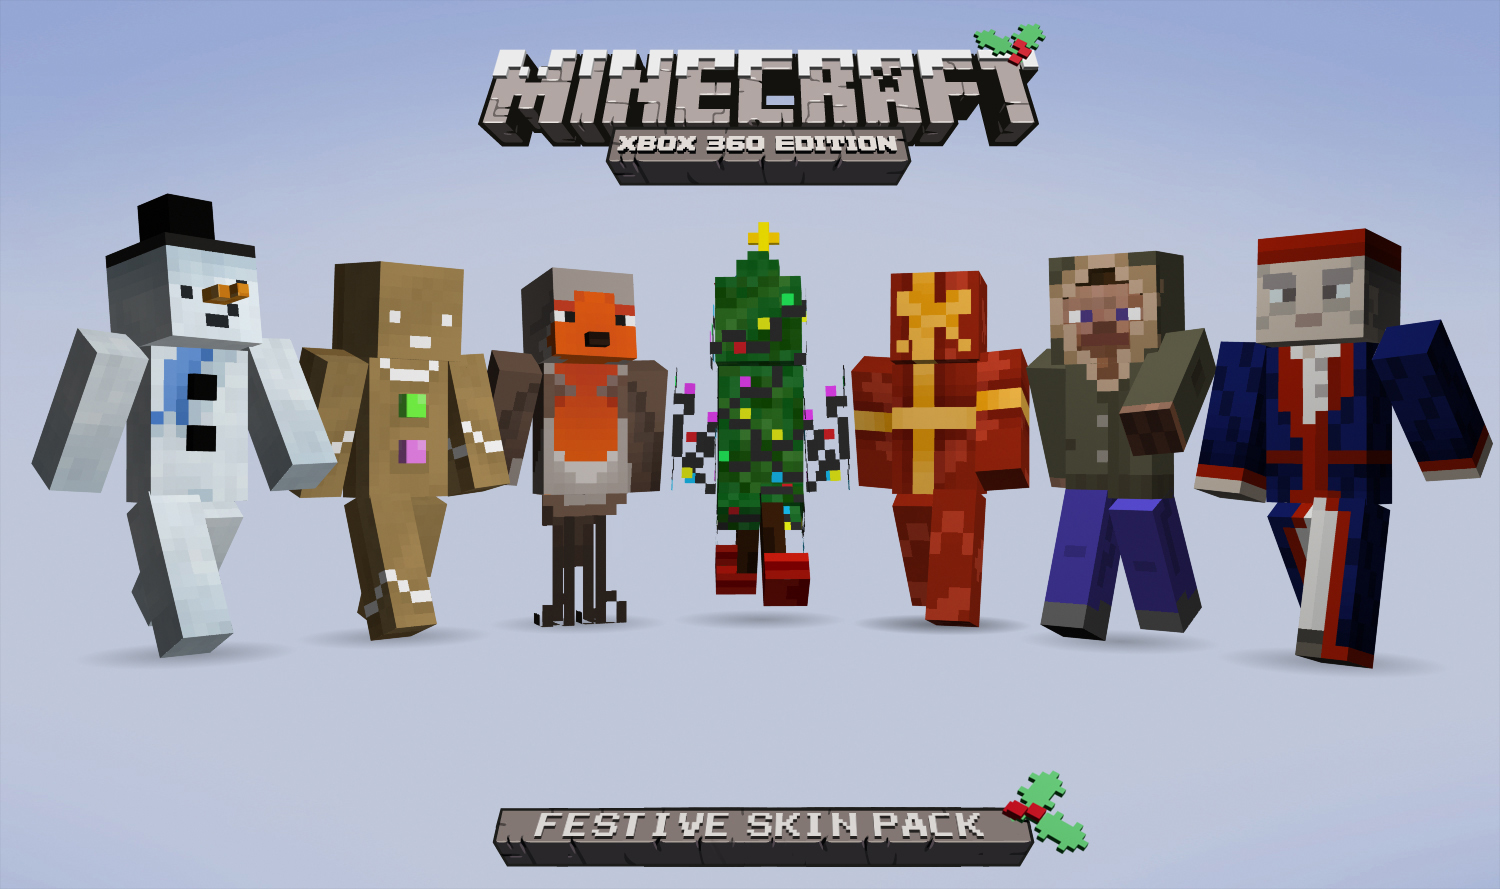 Festive Skins Come To Minecraft Xbox 360 Edition - Just Push Start